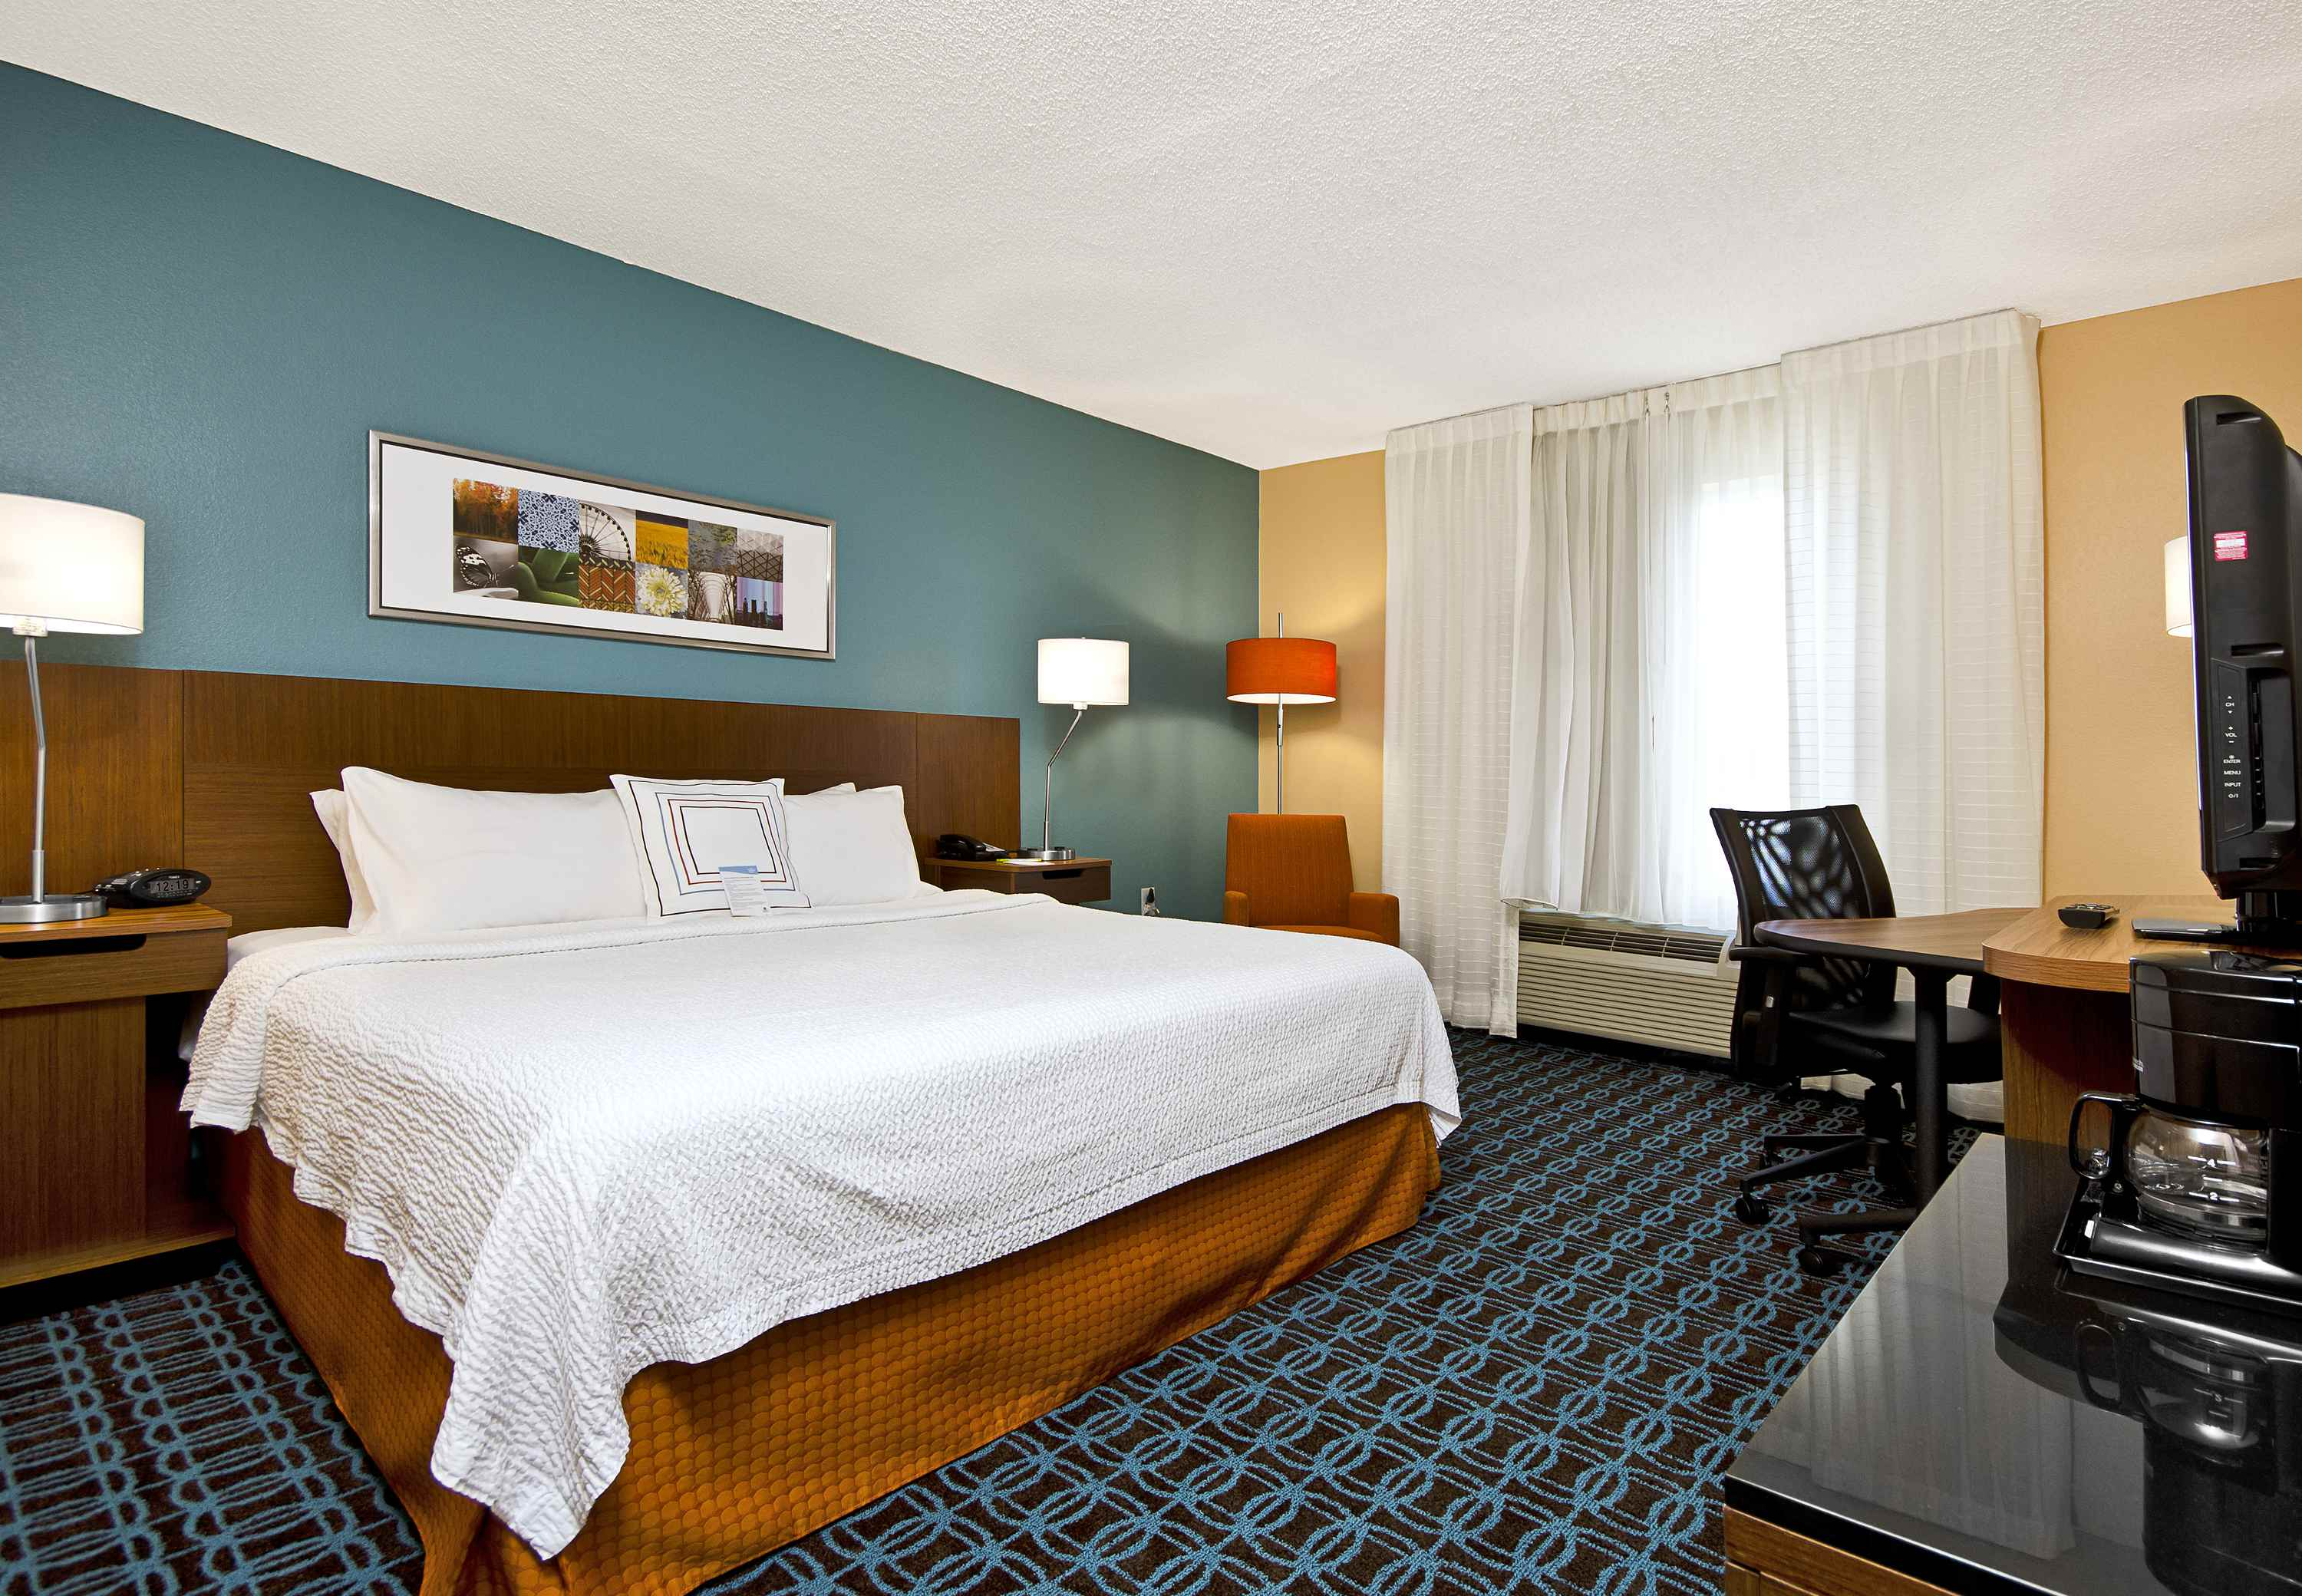 Fairfield Inn & Suites by Marriott Raleigh-Durham Airport/Research Triangle Park image 7